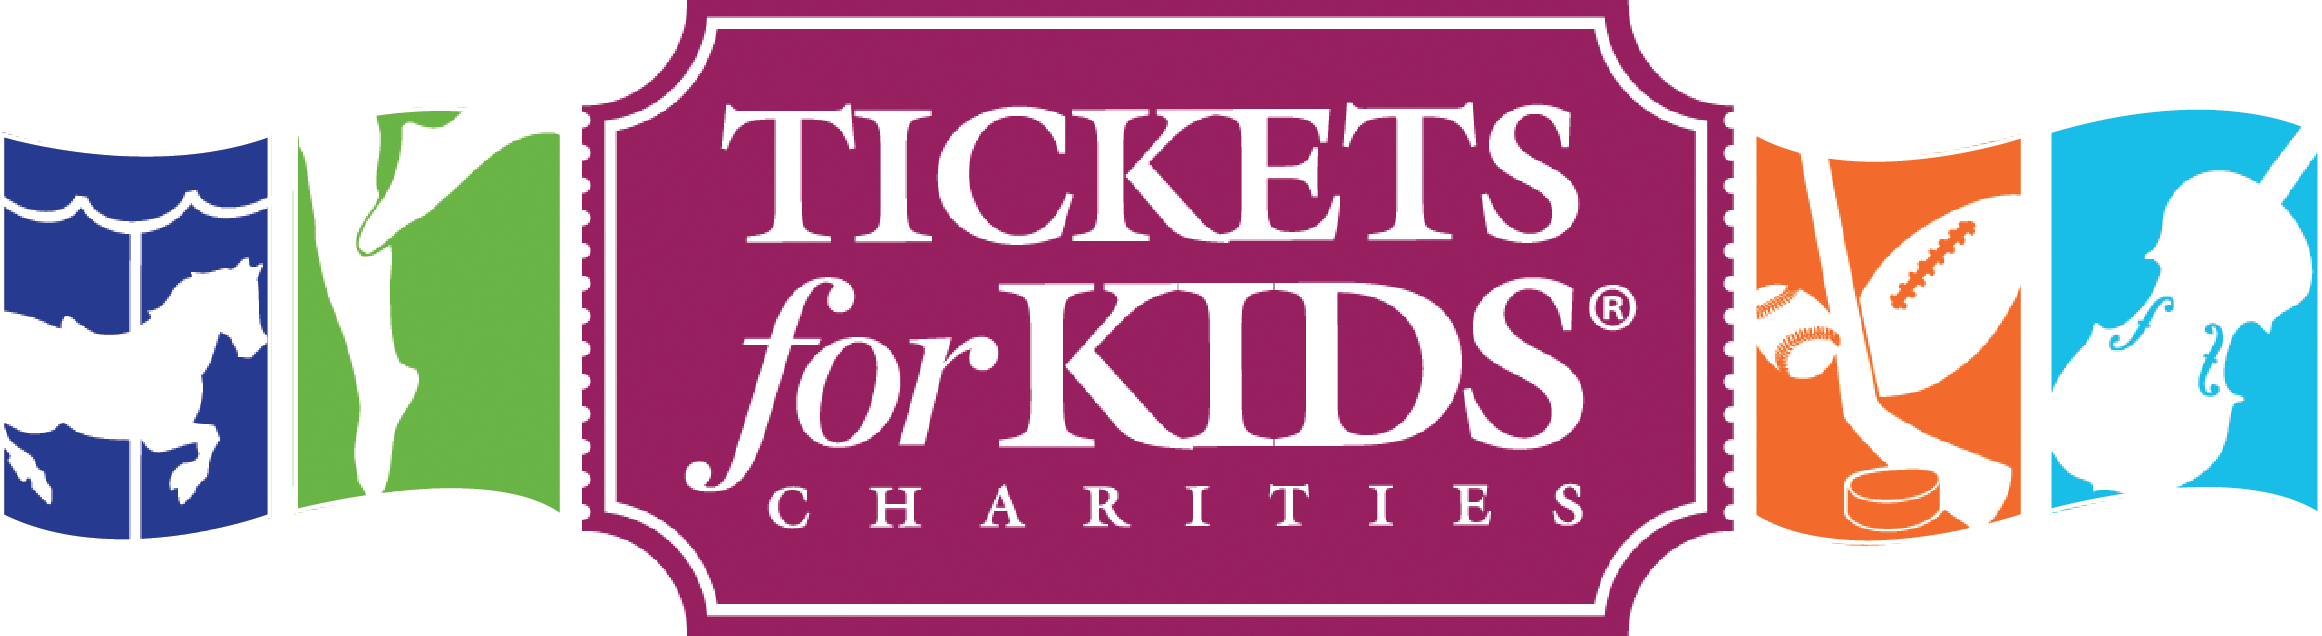 Tickets for Kids Logo